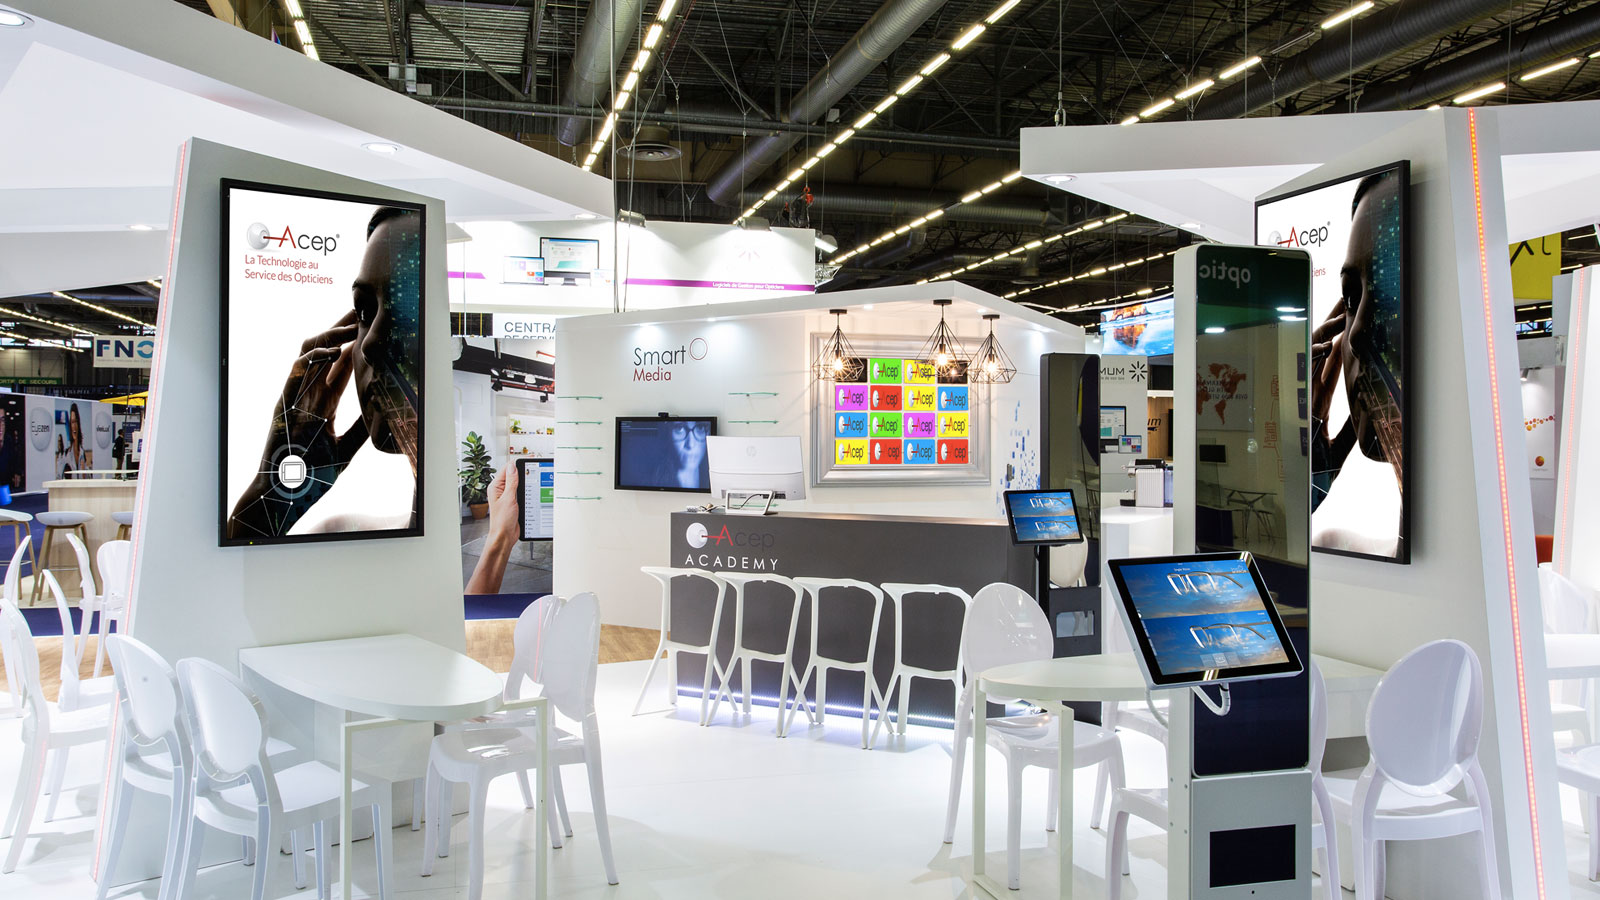 Stand-Design-Acep-Silmo-bar